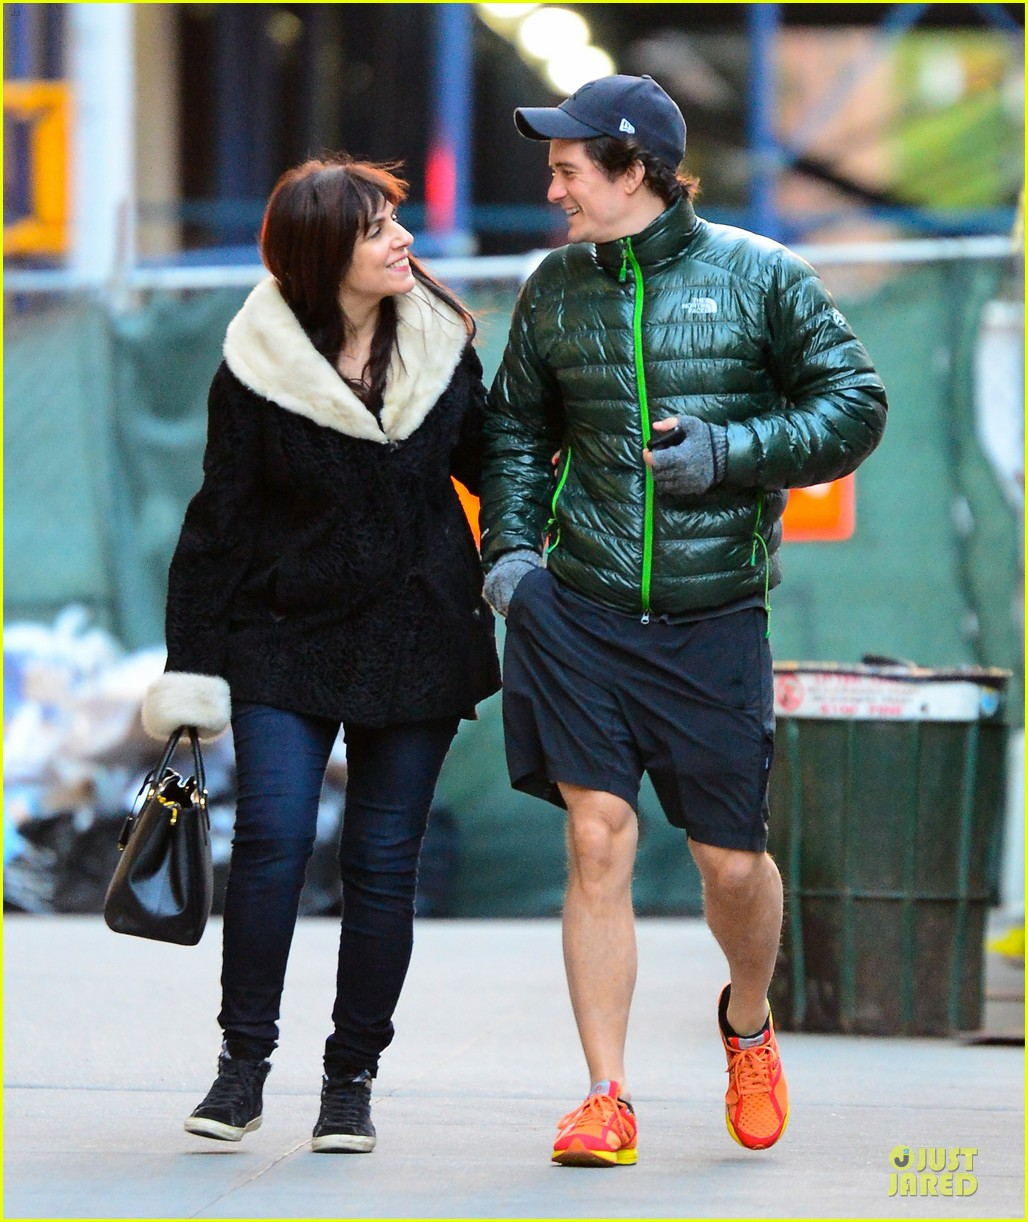 orlando bloom hooks arms with mystery woman in nyc 05